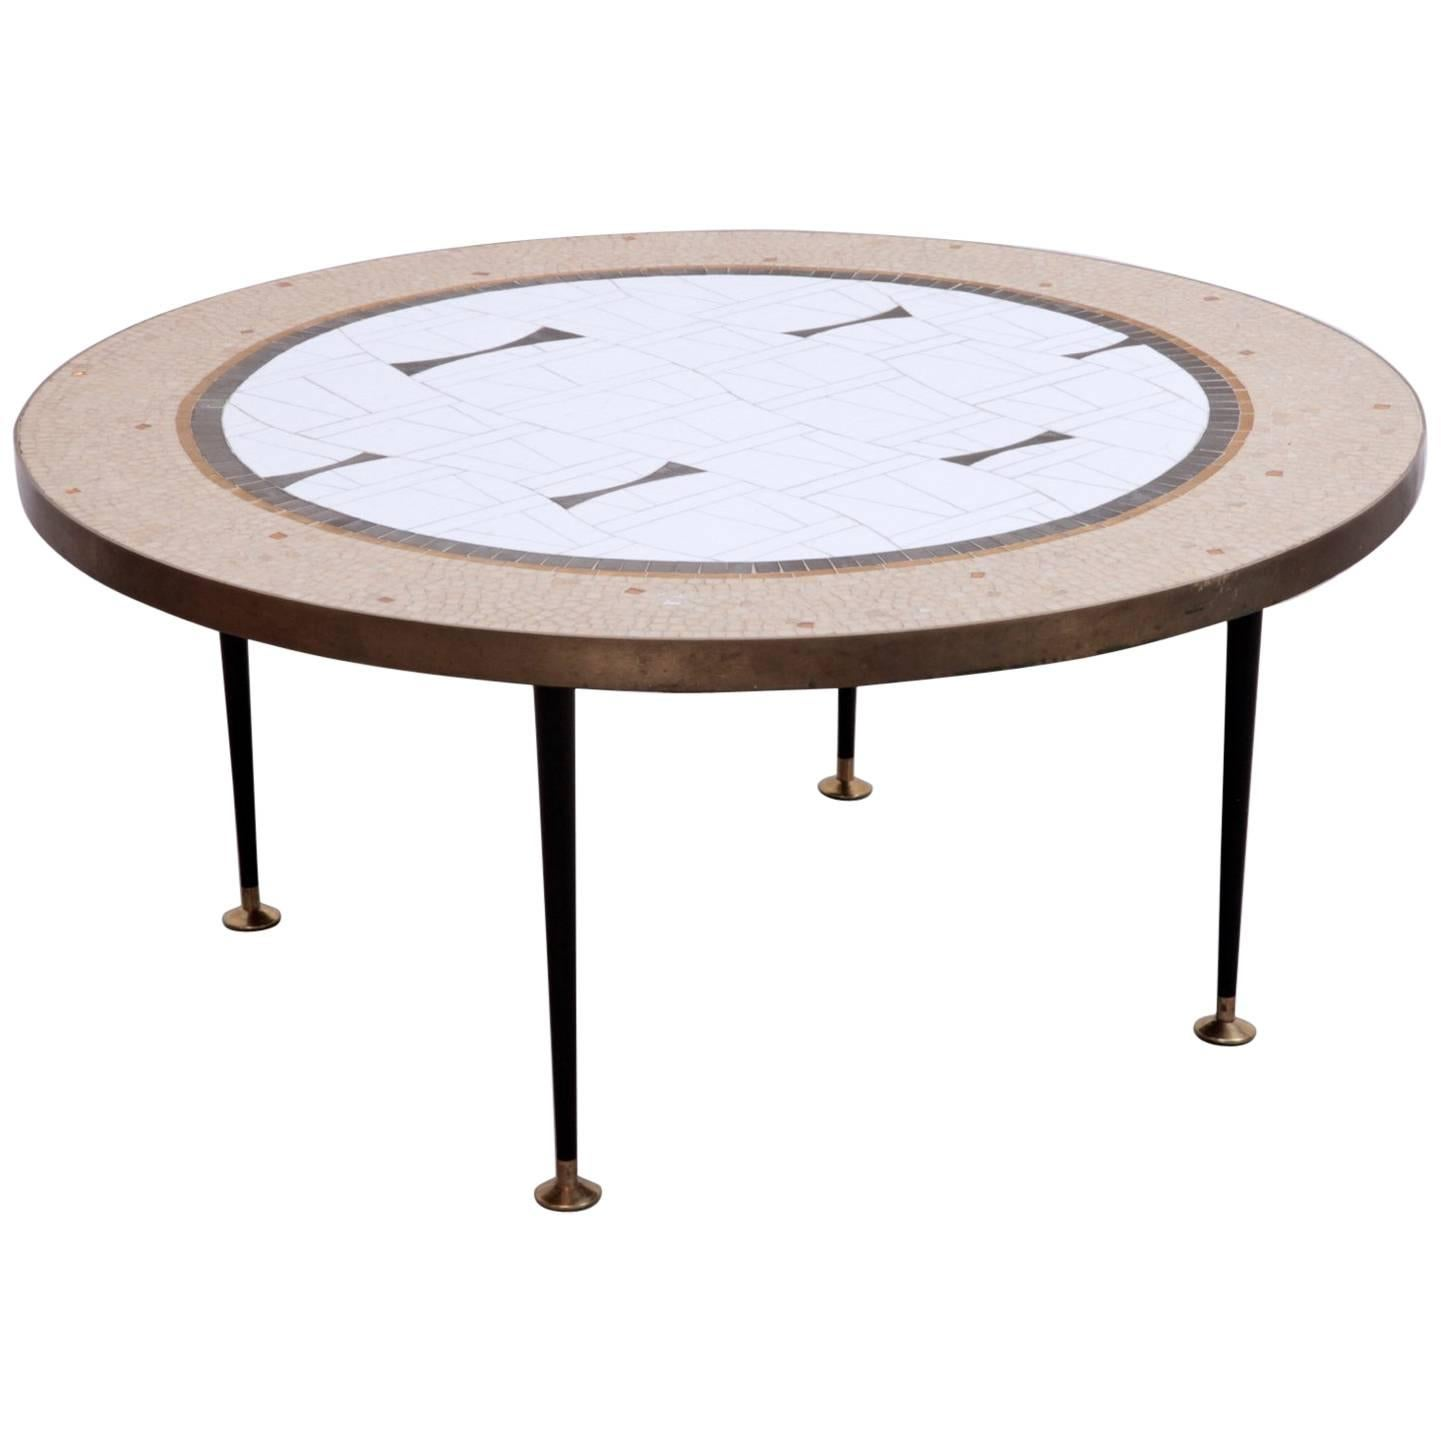 Large Round Berthold Muller Mosaic Coffee Table, Germany, 1960s